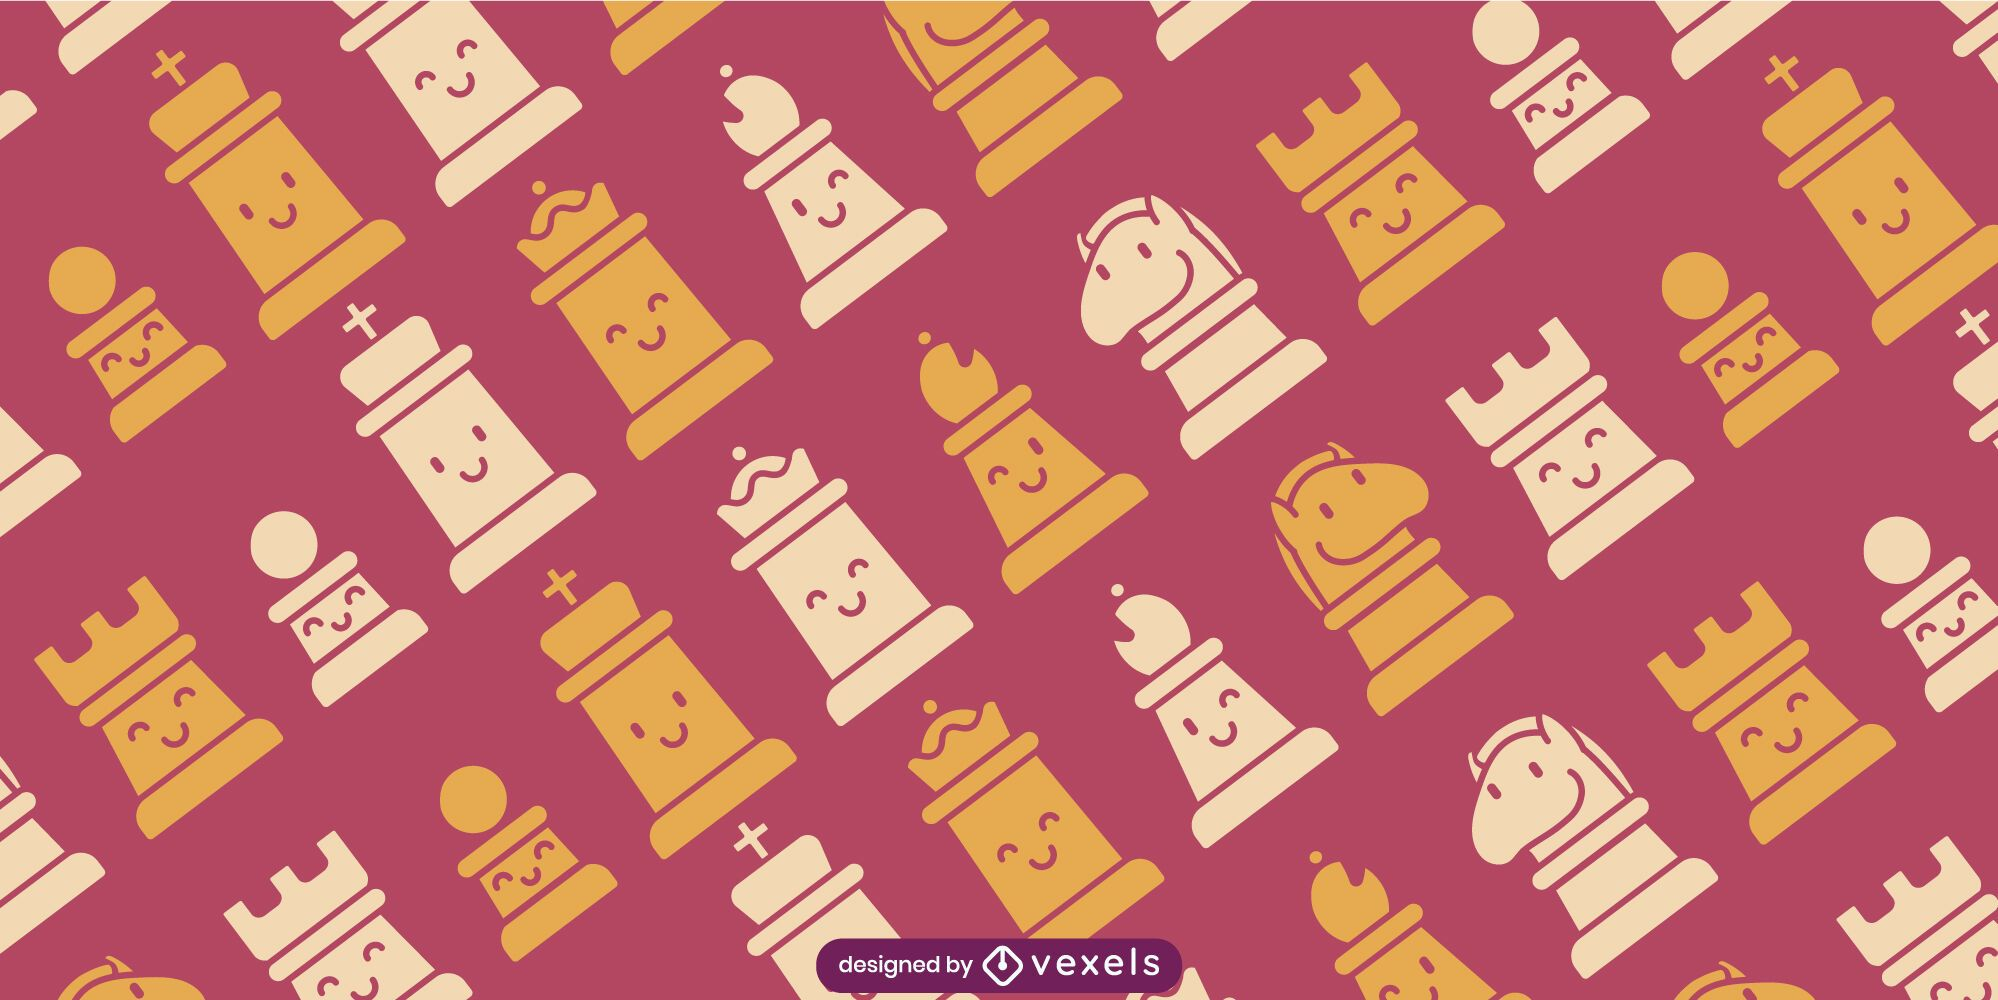 Cute chess pieces cut out pattern